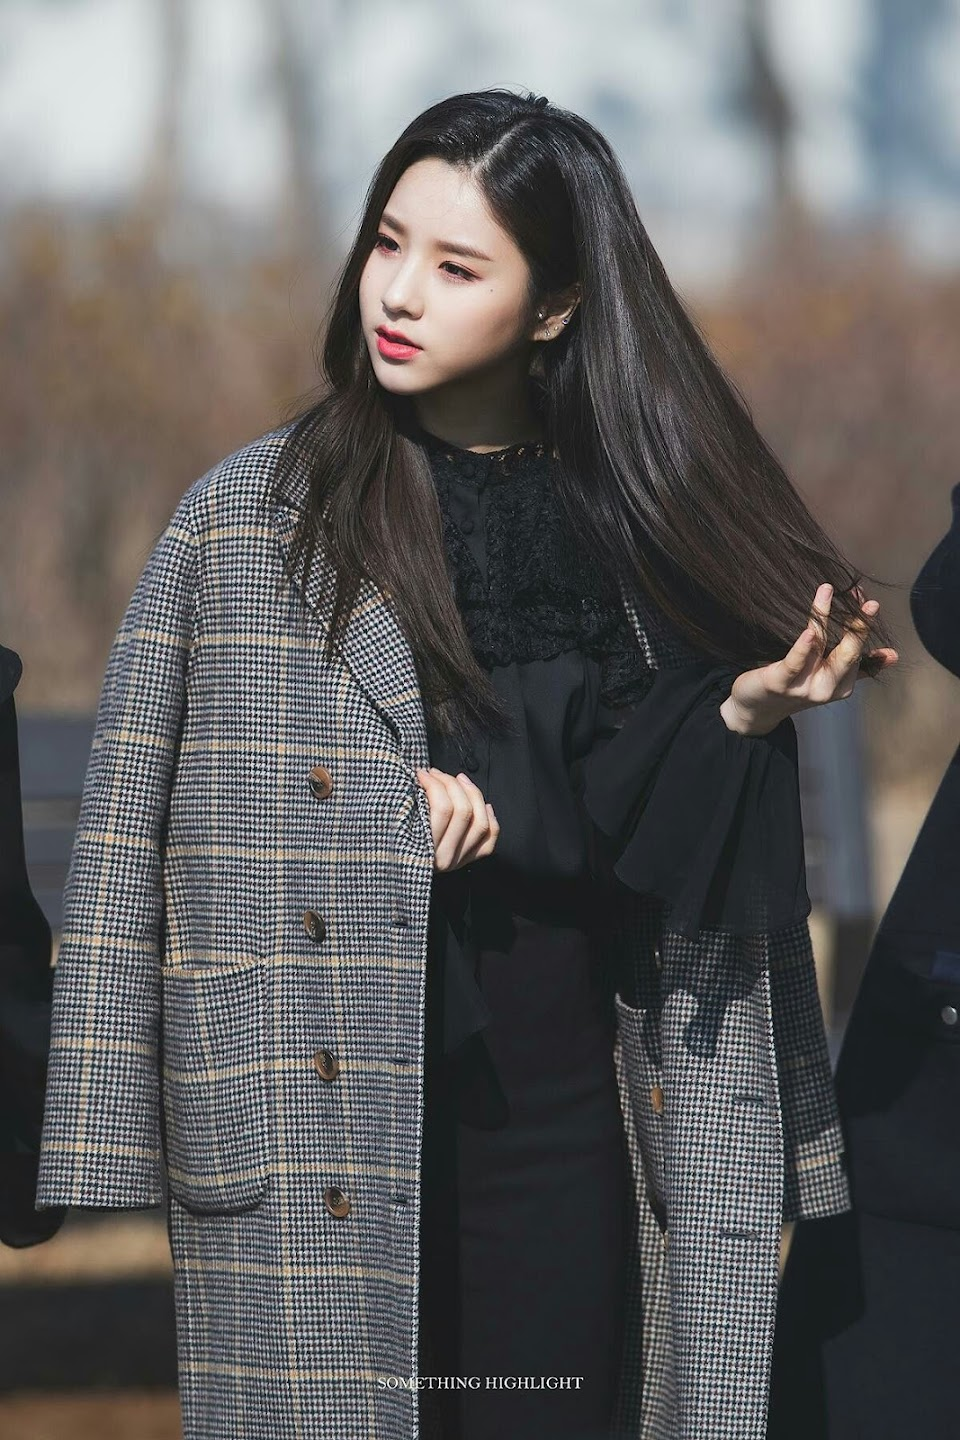 heejin plaid 36